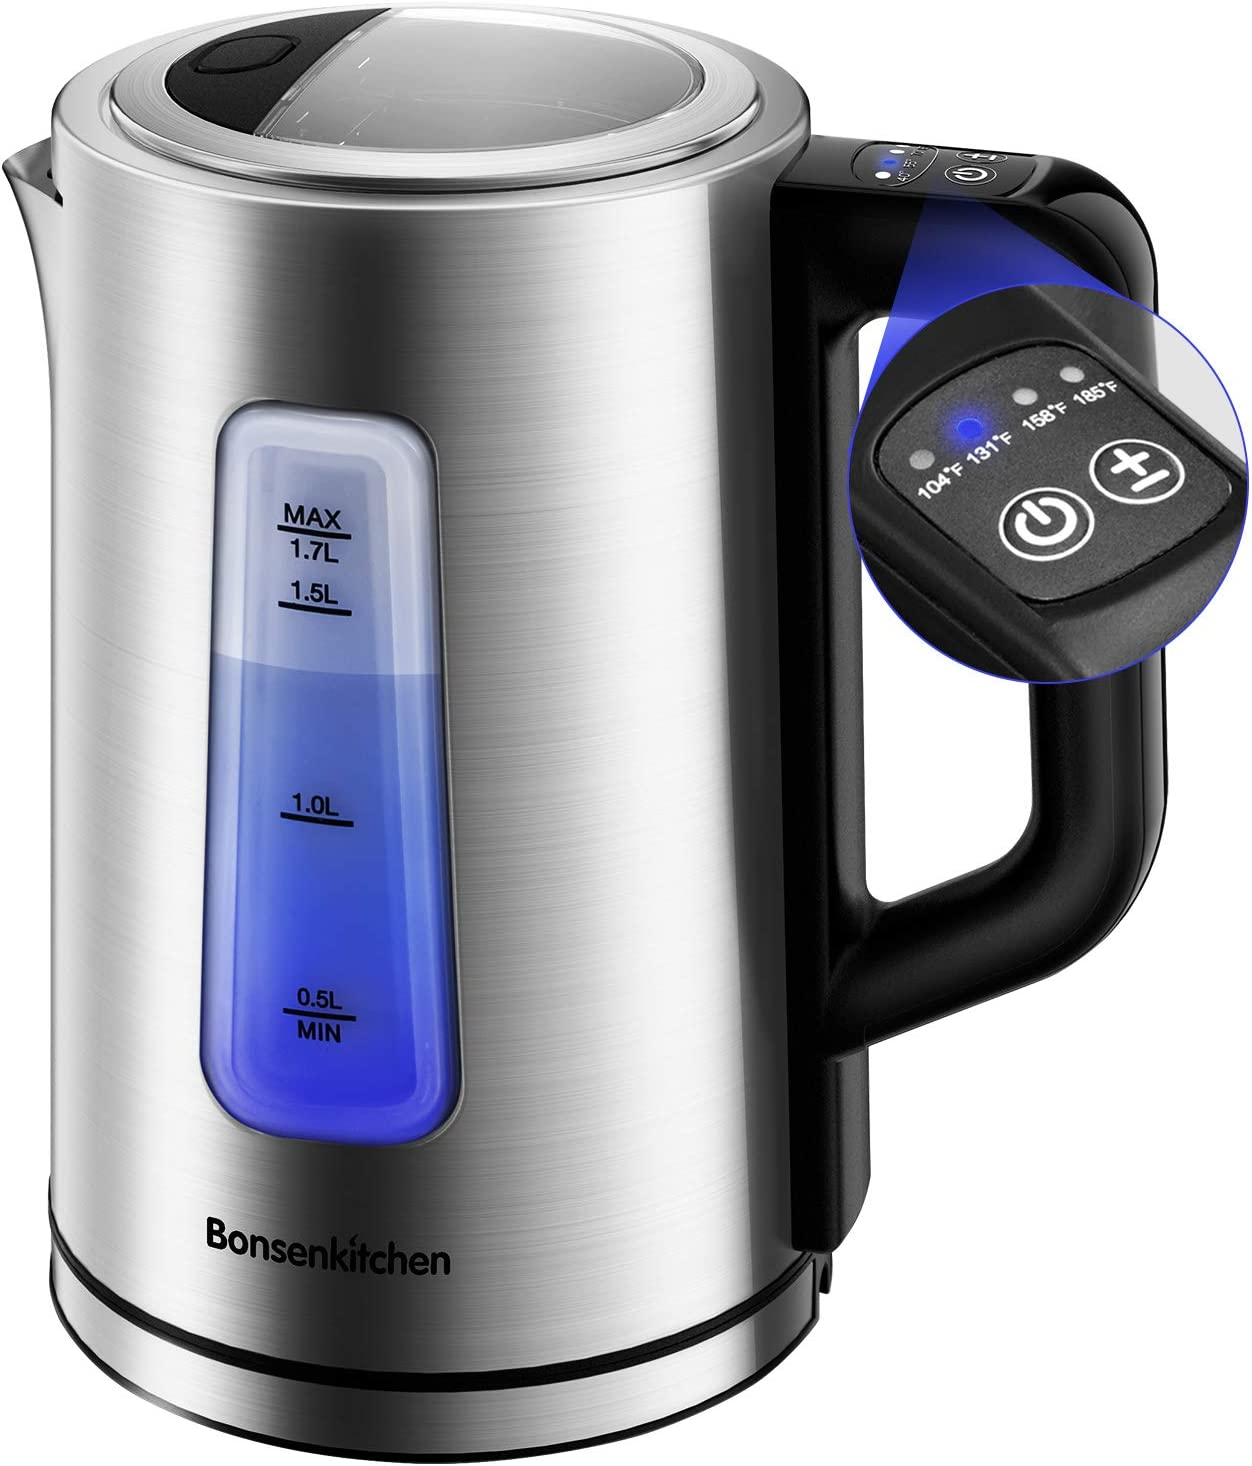 Electric Stainless Steel Tea Kettle 1.7L, Bonsenkitchen Electric Kettle Temperature Control Water Boiler Automatic Shut Off, 1500W Fast Heating Cordless Water Heater for Coffee, Tea or Milk with Led Light